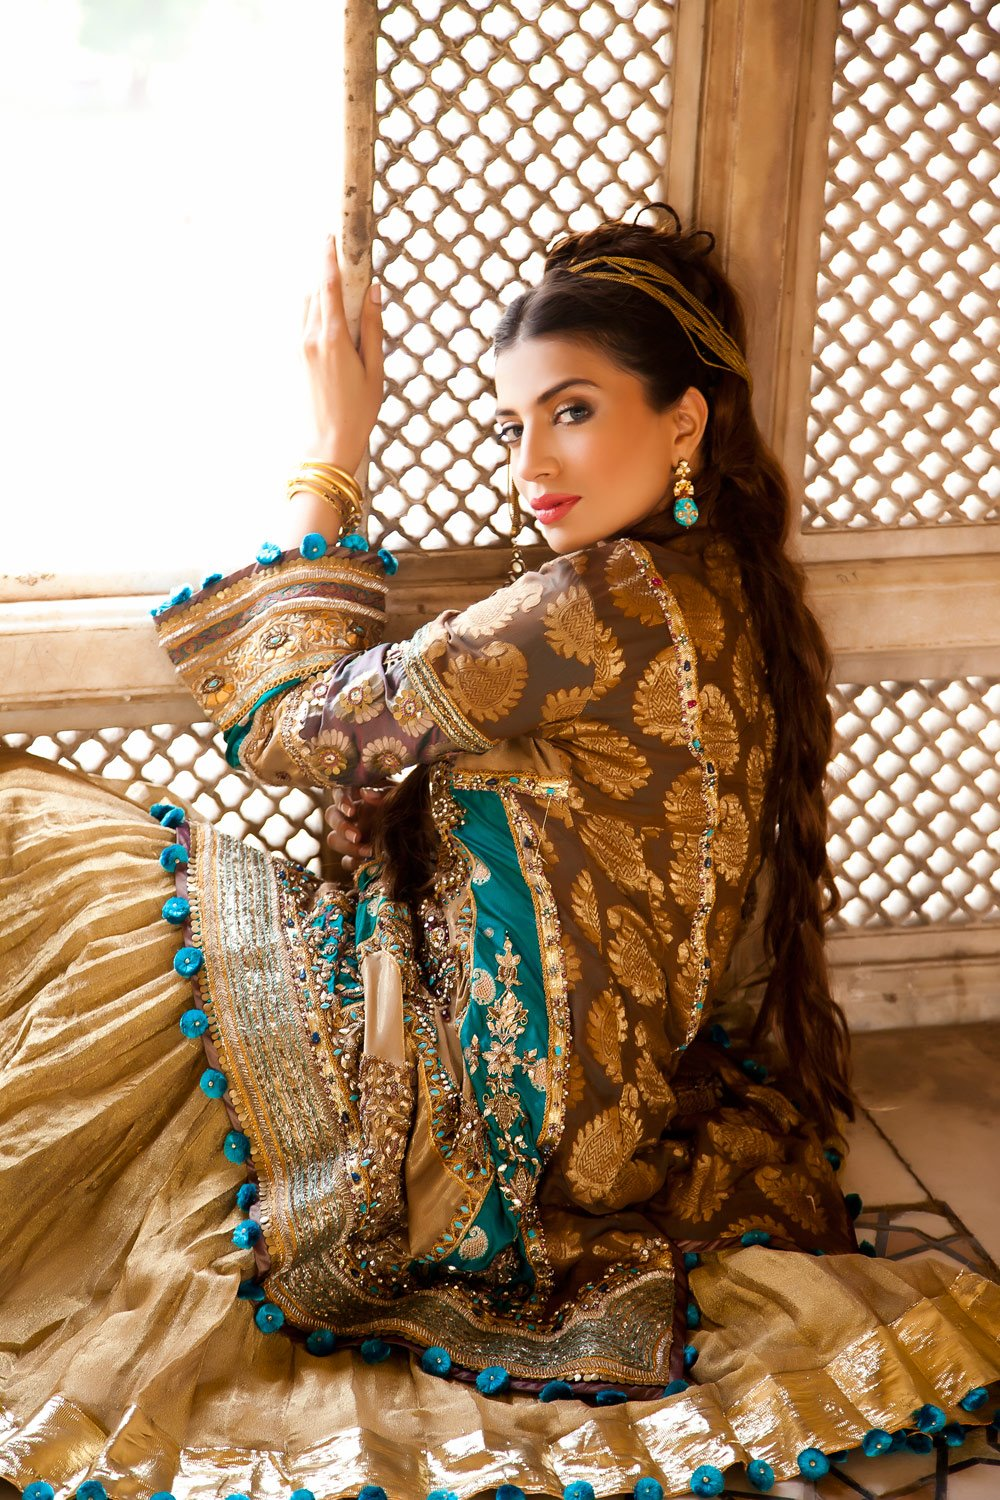 Saadia Mirza By Maram Amp Aabroo Salon And Studio Featuring